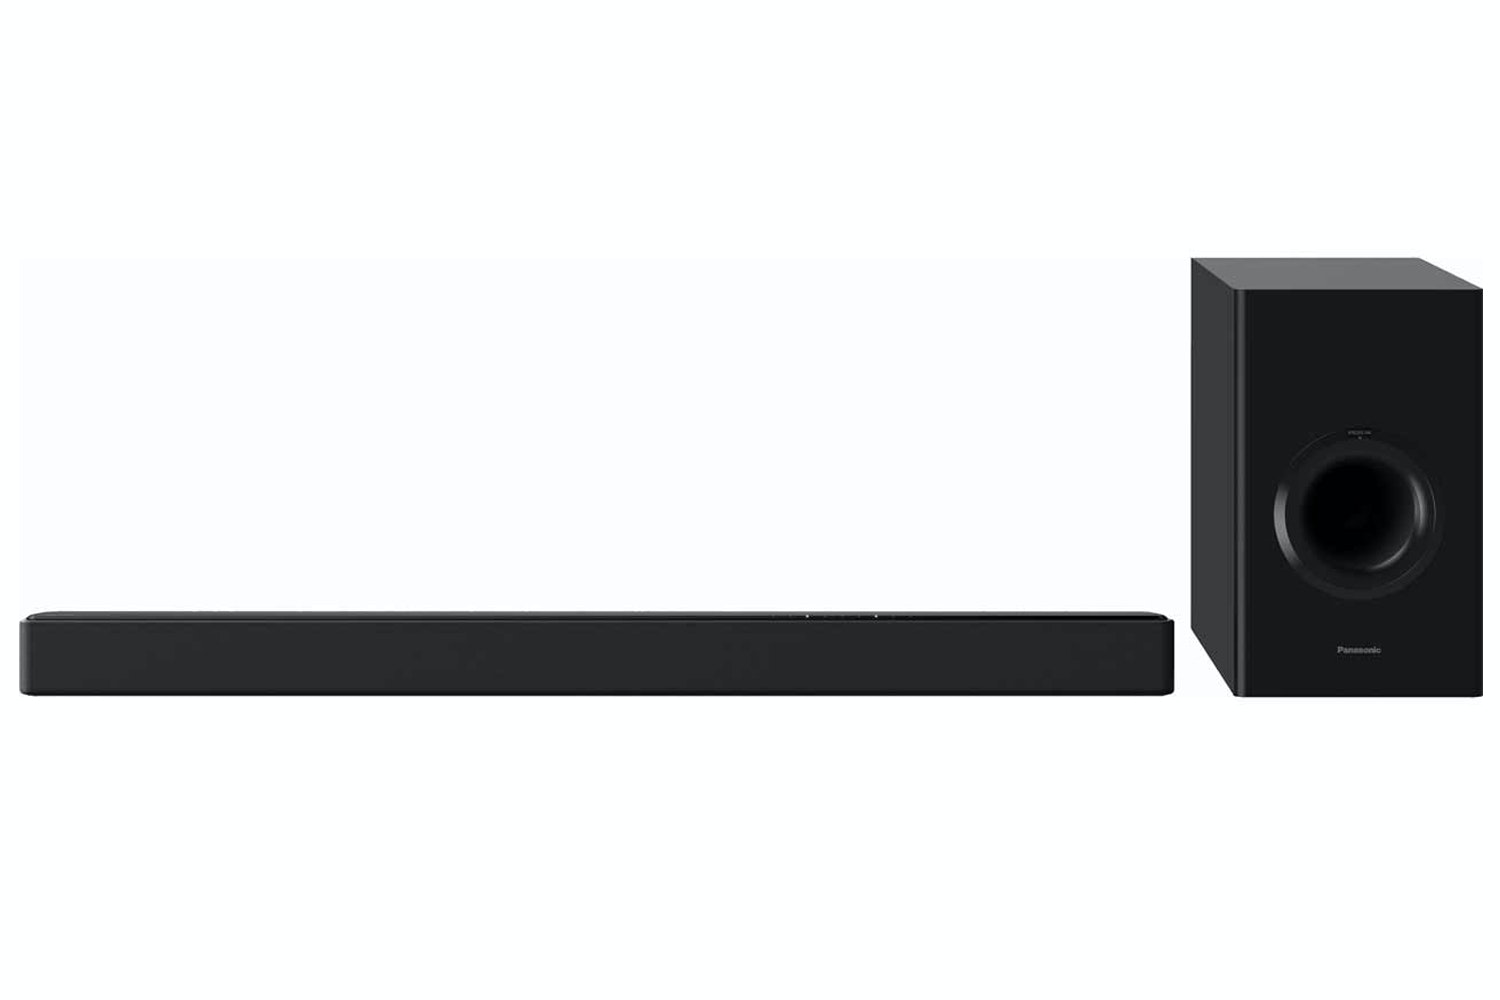 Panasonic 200W Sound Bar | SC-HTB488EBK